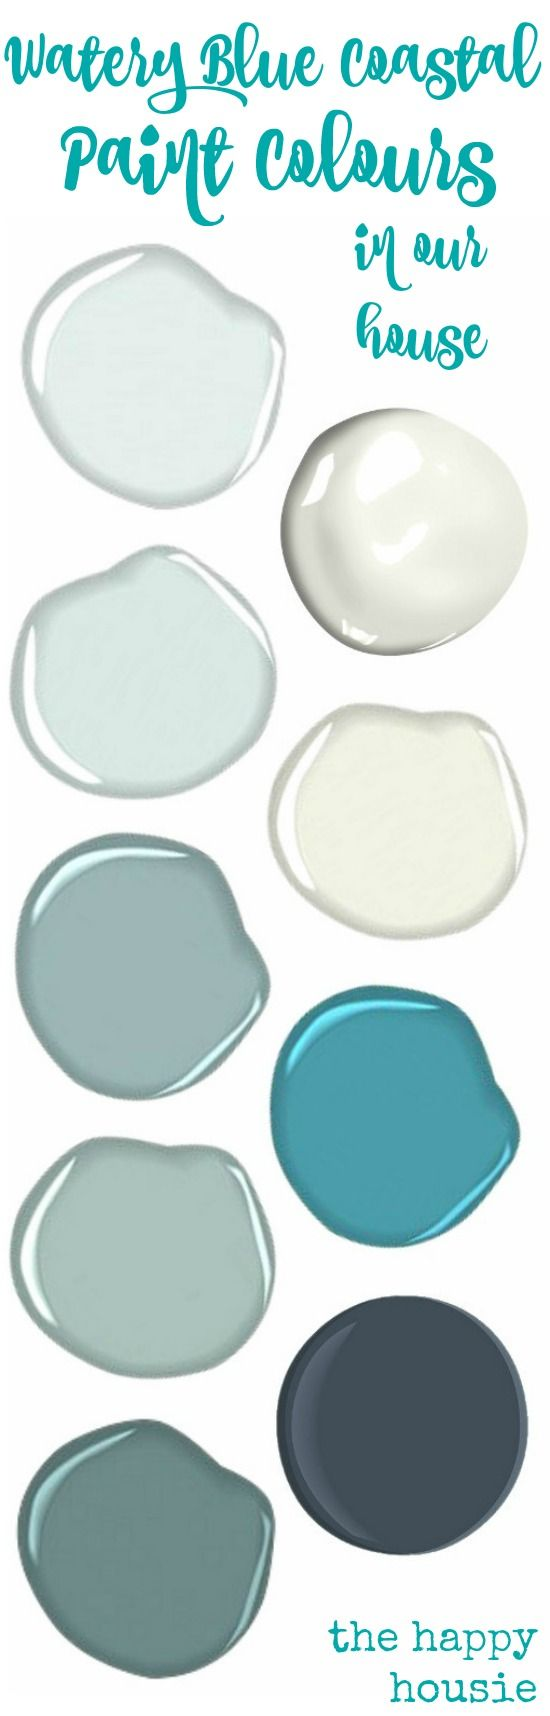 Our paint colours coastal paint colors coastal and house for Watery paint color